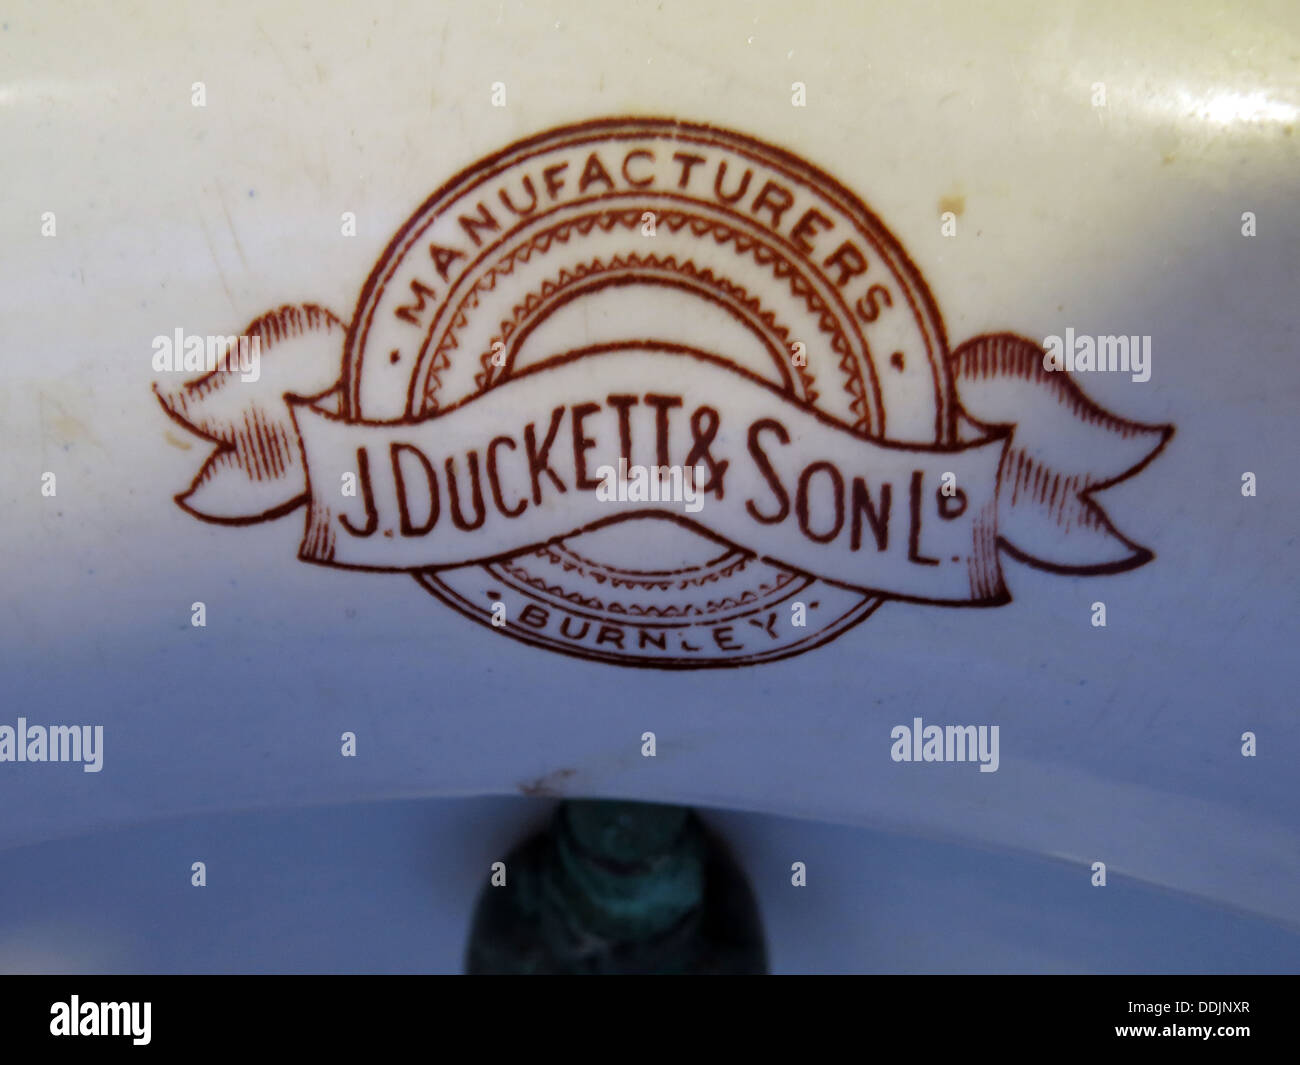 J Duckett & Son Ltd Urinal, Manufacturer , Burnley, North West England, UK - Stock Image